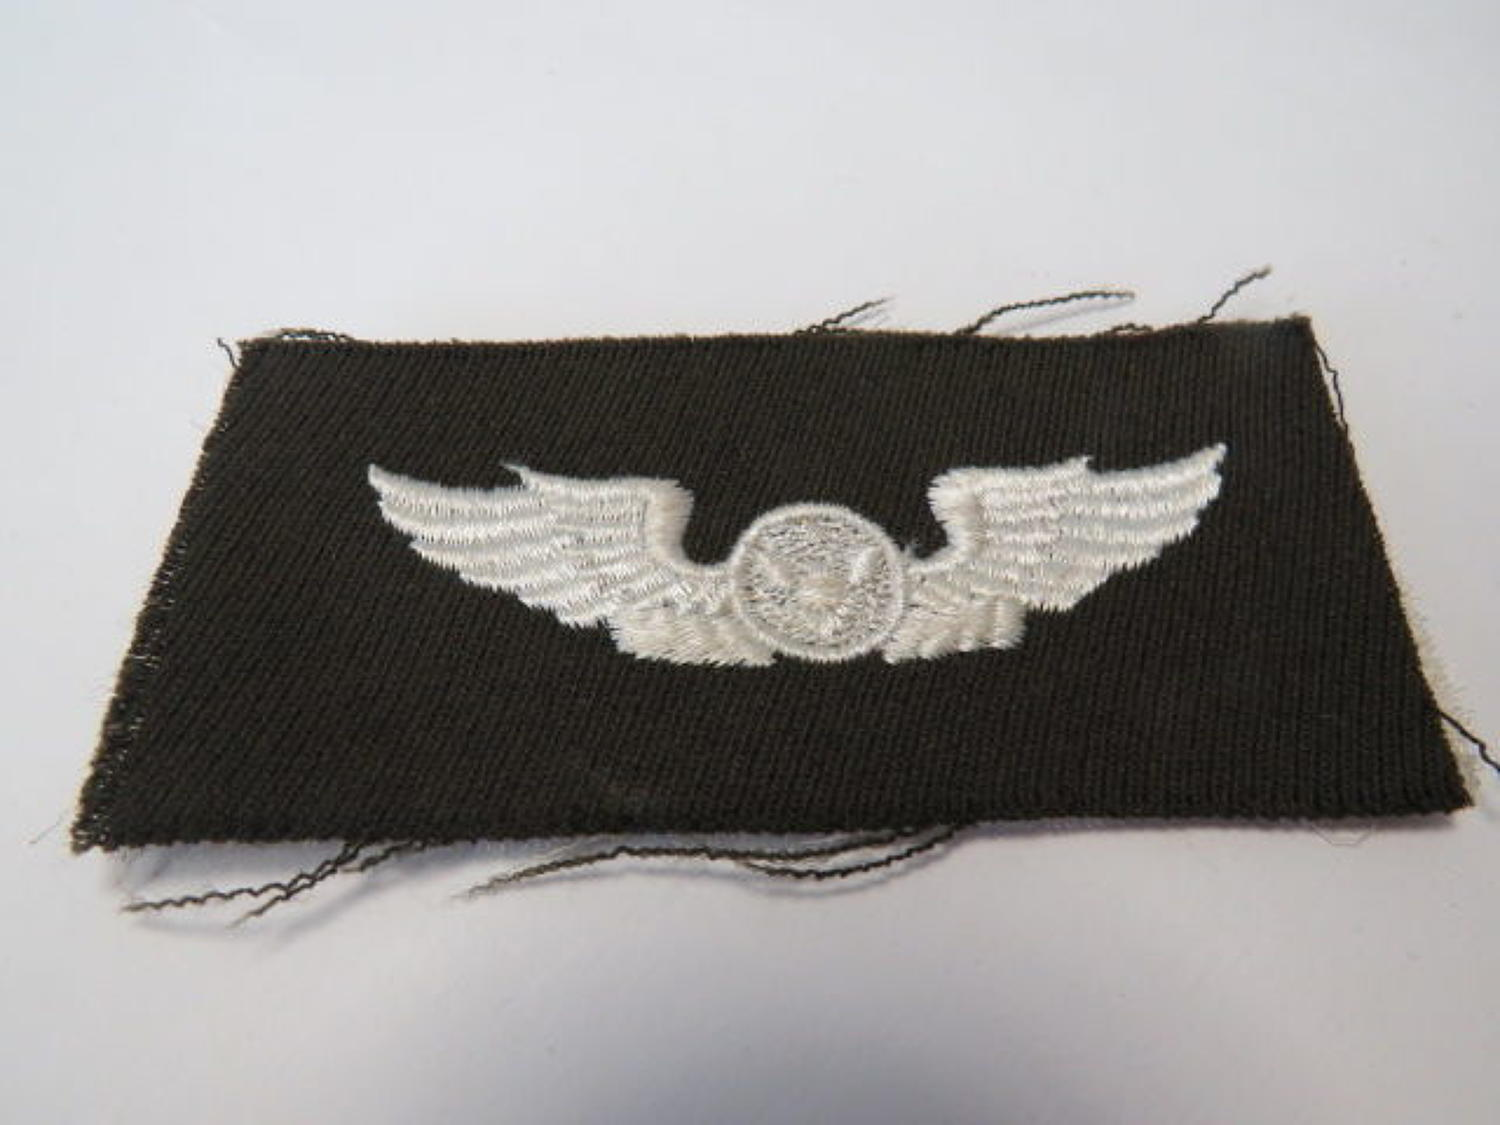 WW 2 USAAF Air Crew Wings